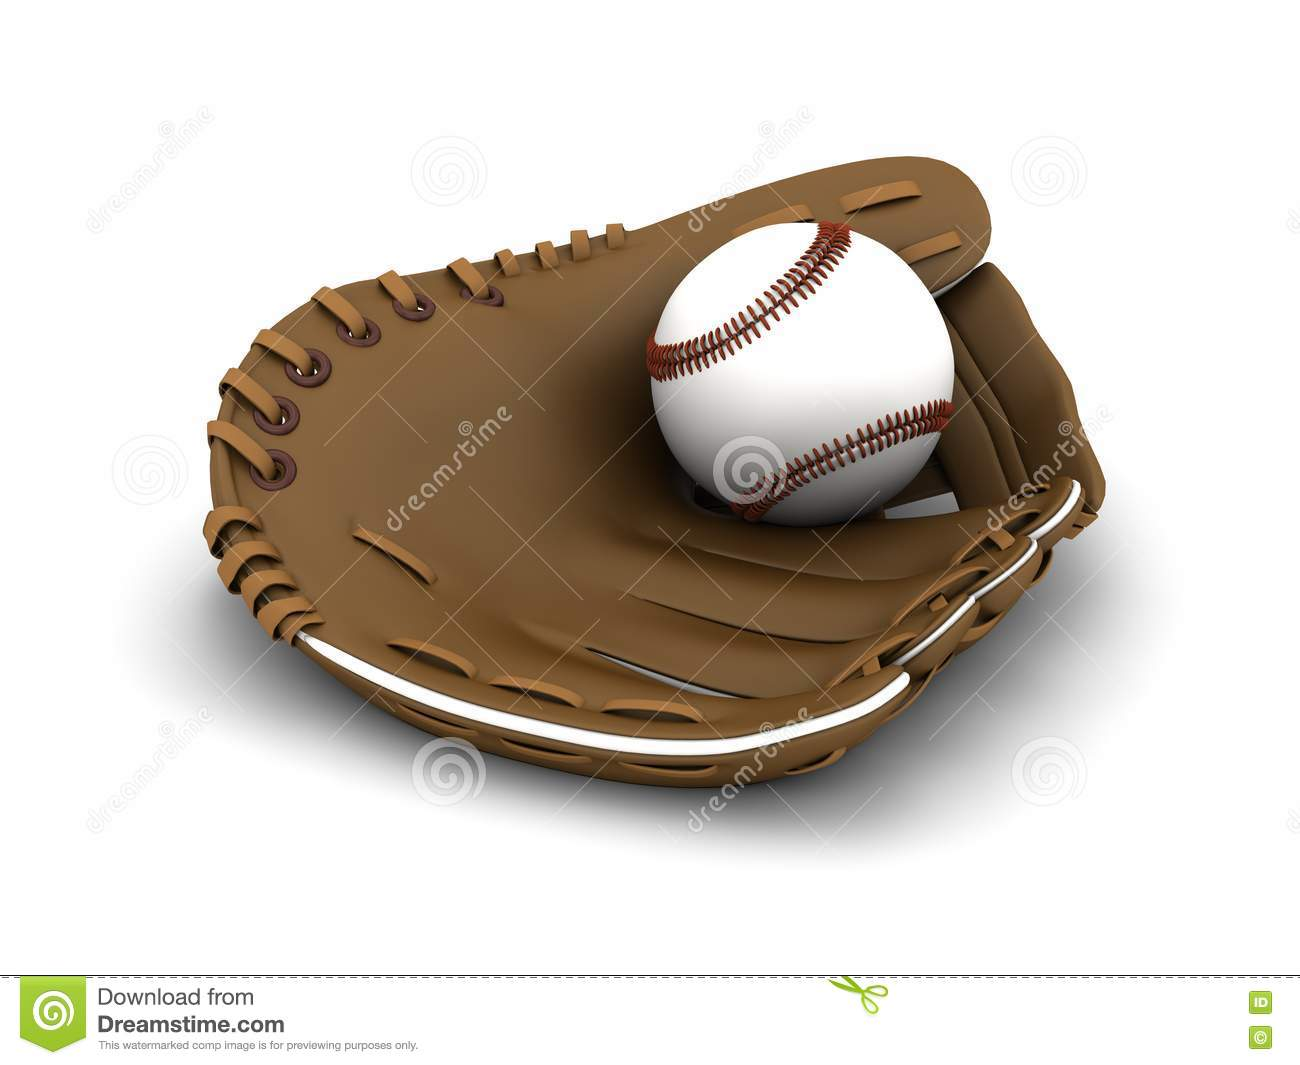 Baseball And Glove Royalty Free Stock Image - Image: 19435596